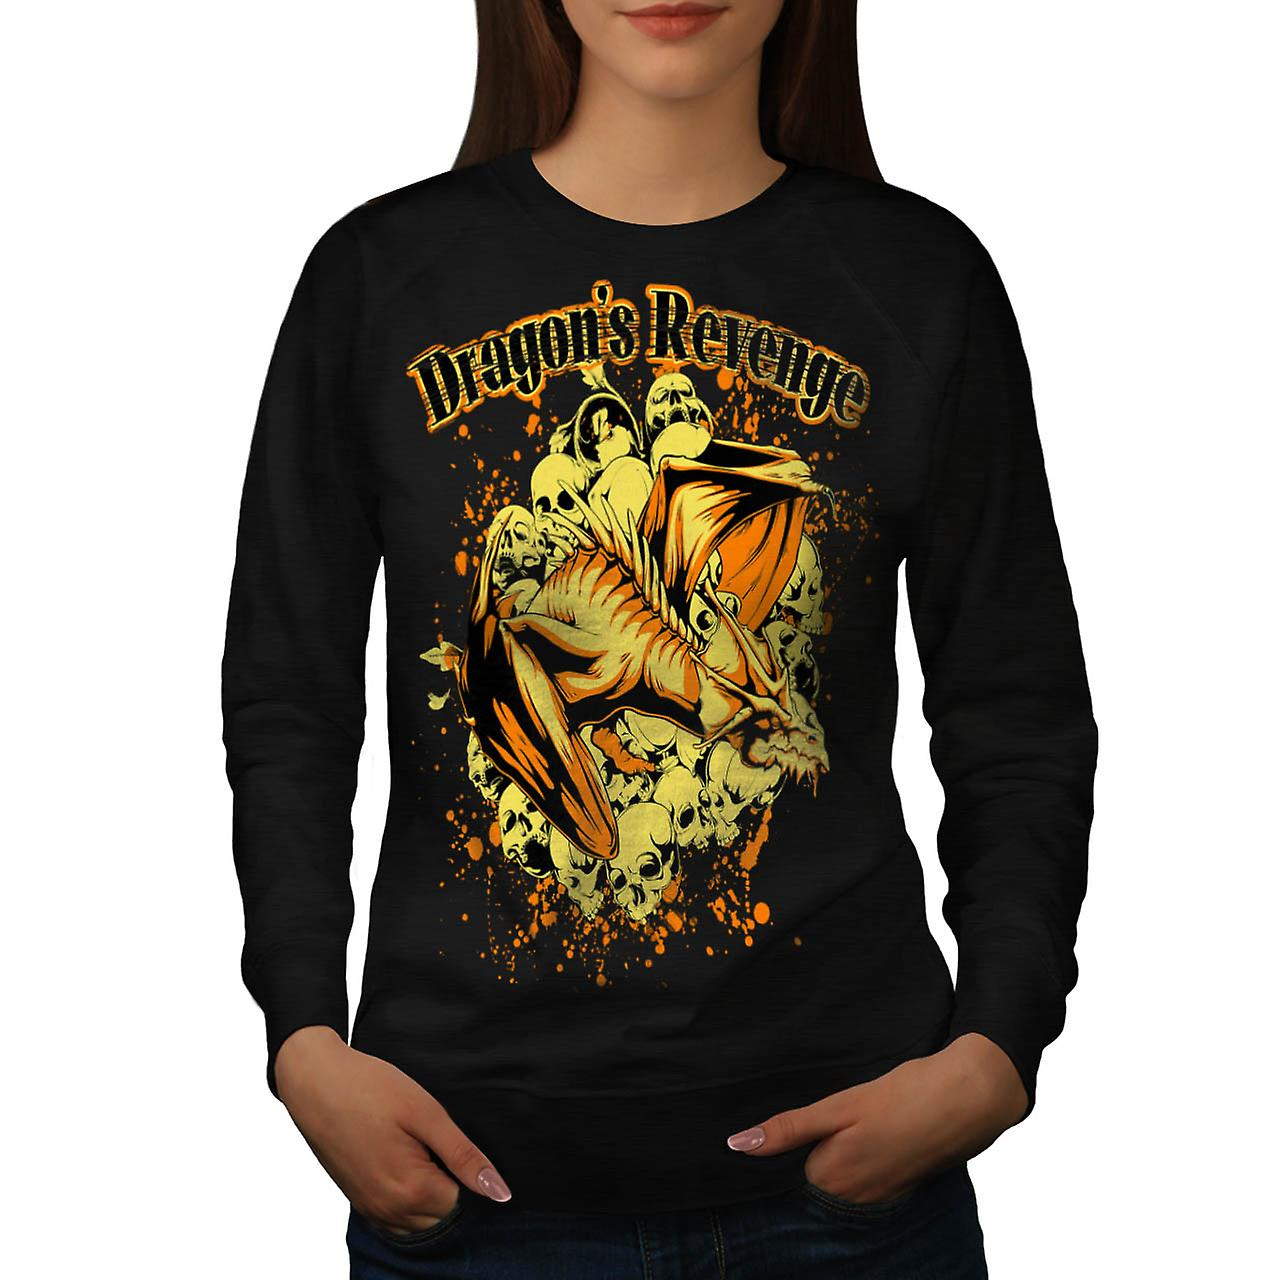 Dragon Revenge Rage Myth Monster Women Black Sweatshirt | Wellcoda